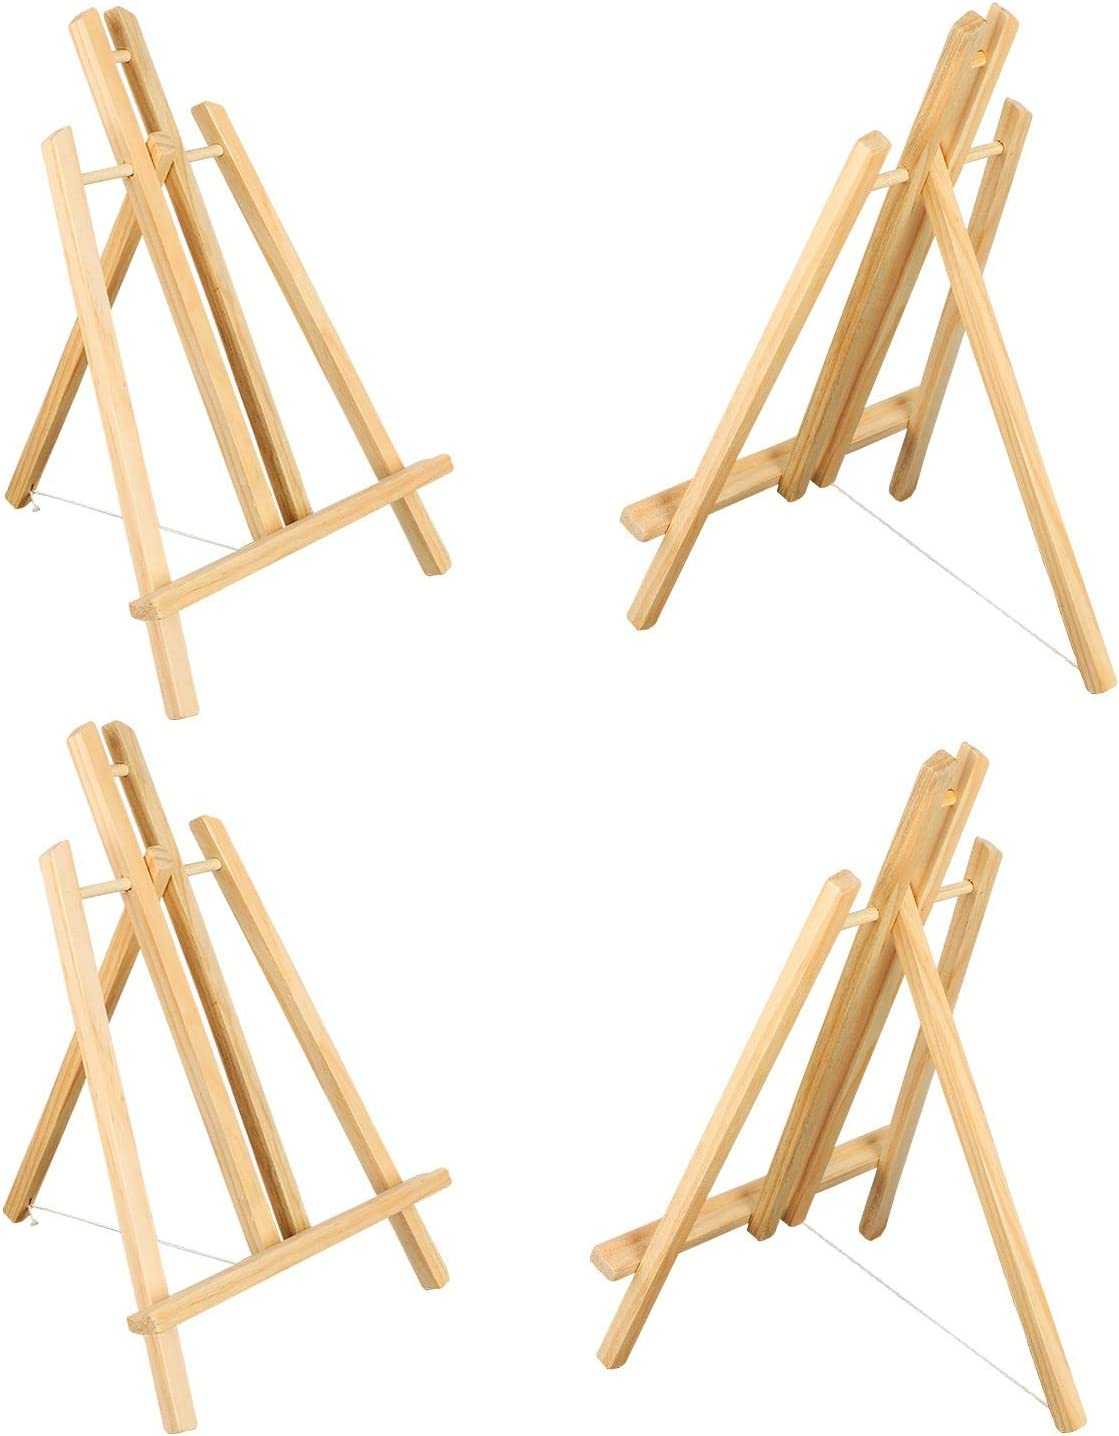 4Pcs Wooden Easel,Easel Stand,Foldable A Frame Wood Easel Adjustable Table Easel for Kids,Oil Water Painting, Table Top Arts and Crafts,Students Classroom Etc.